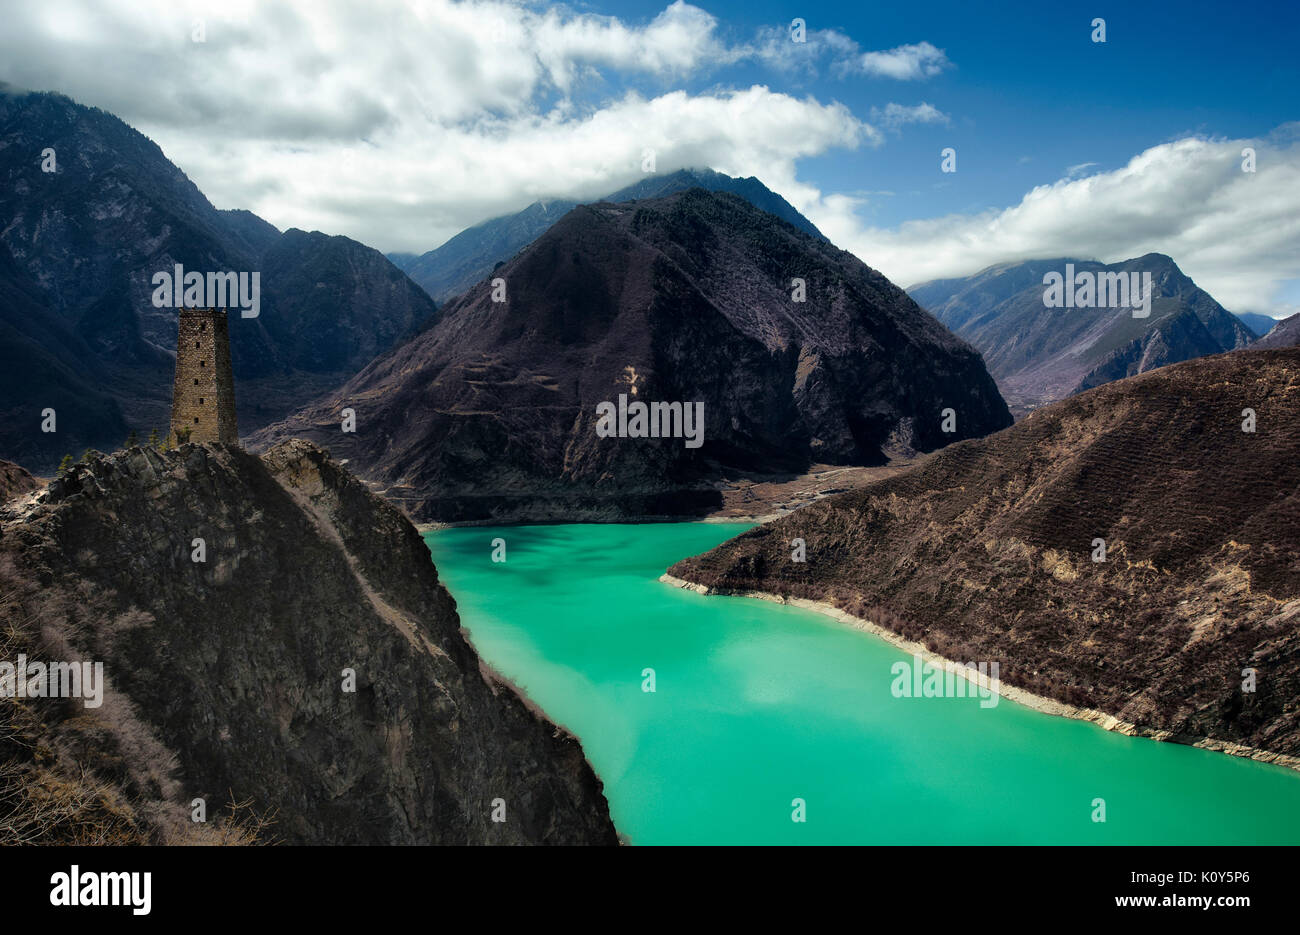 Tibetan plateau reservoir, Northern Sichuan, China - Stock Image